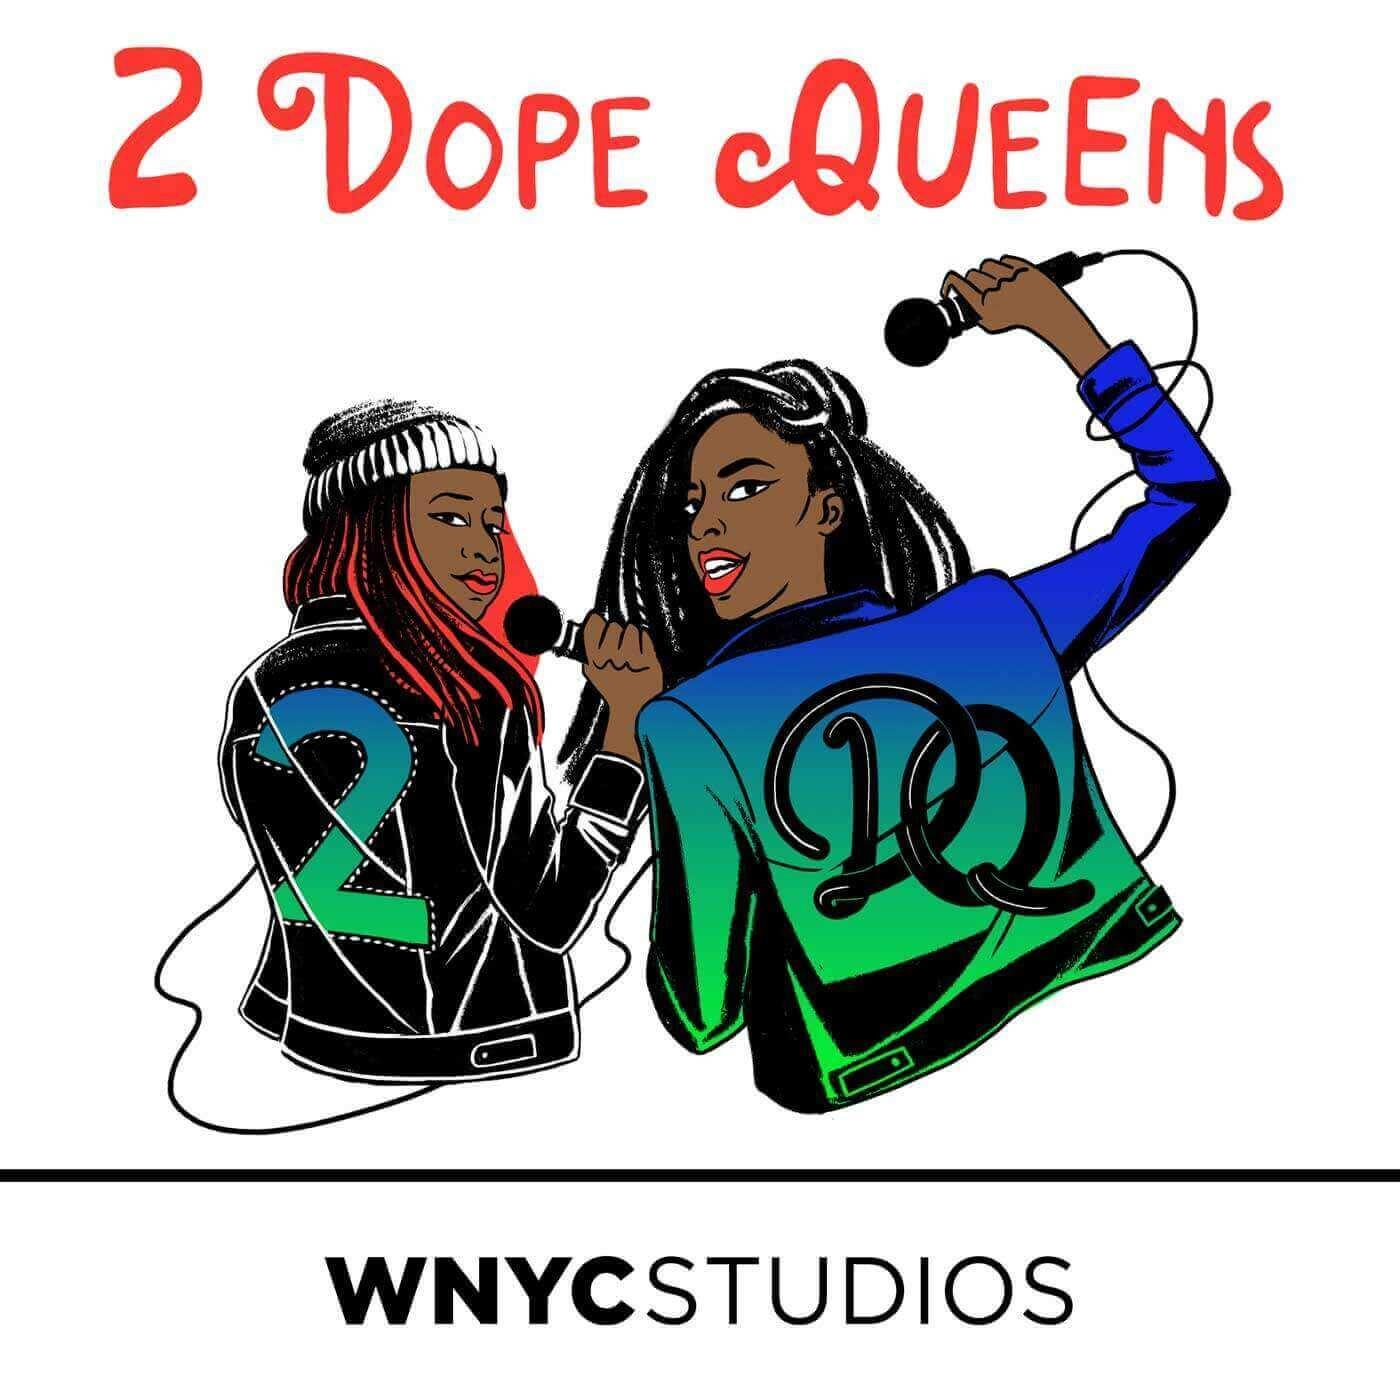 2dopequeenspodcast.png